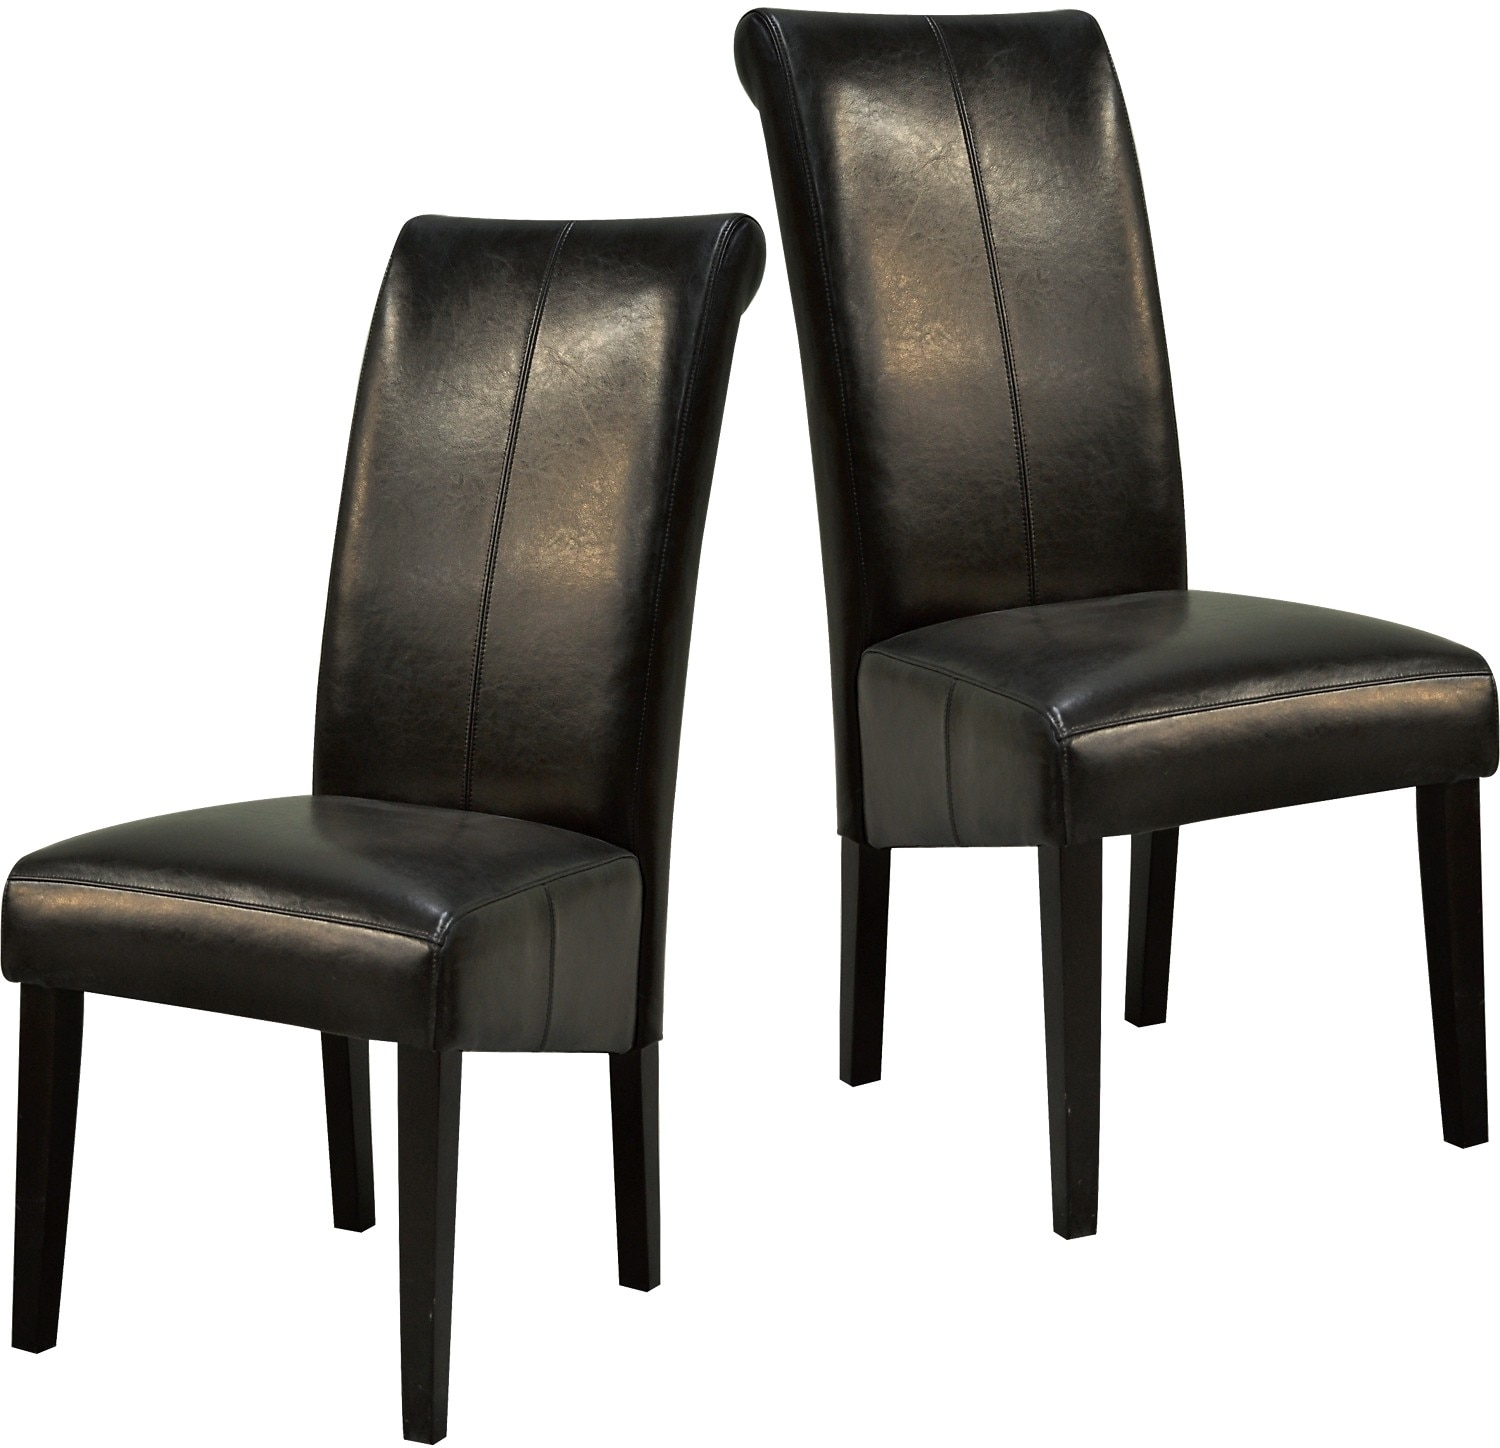 Dining Room Furniture - Idea Dining Chair Package - Brown